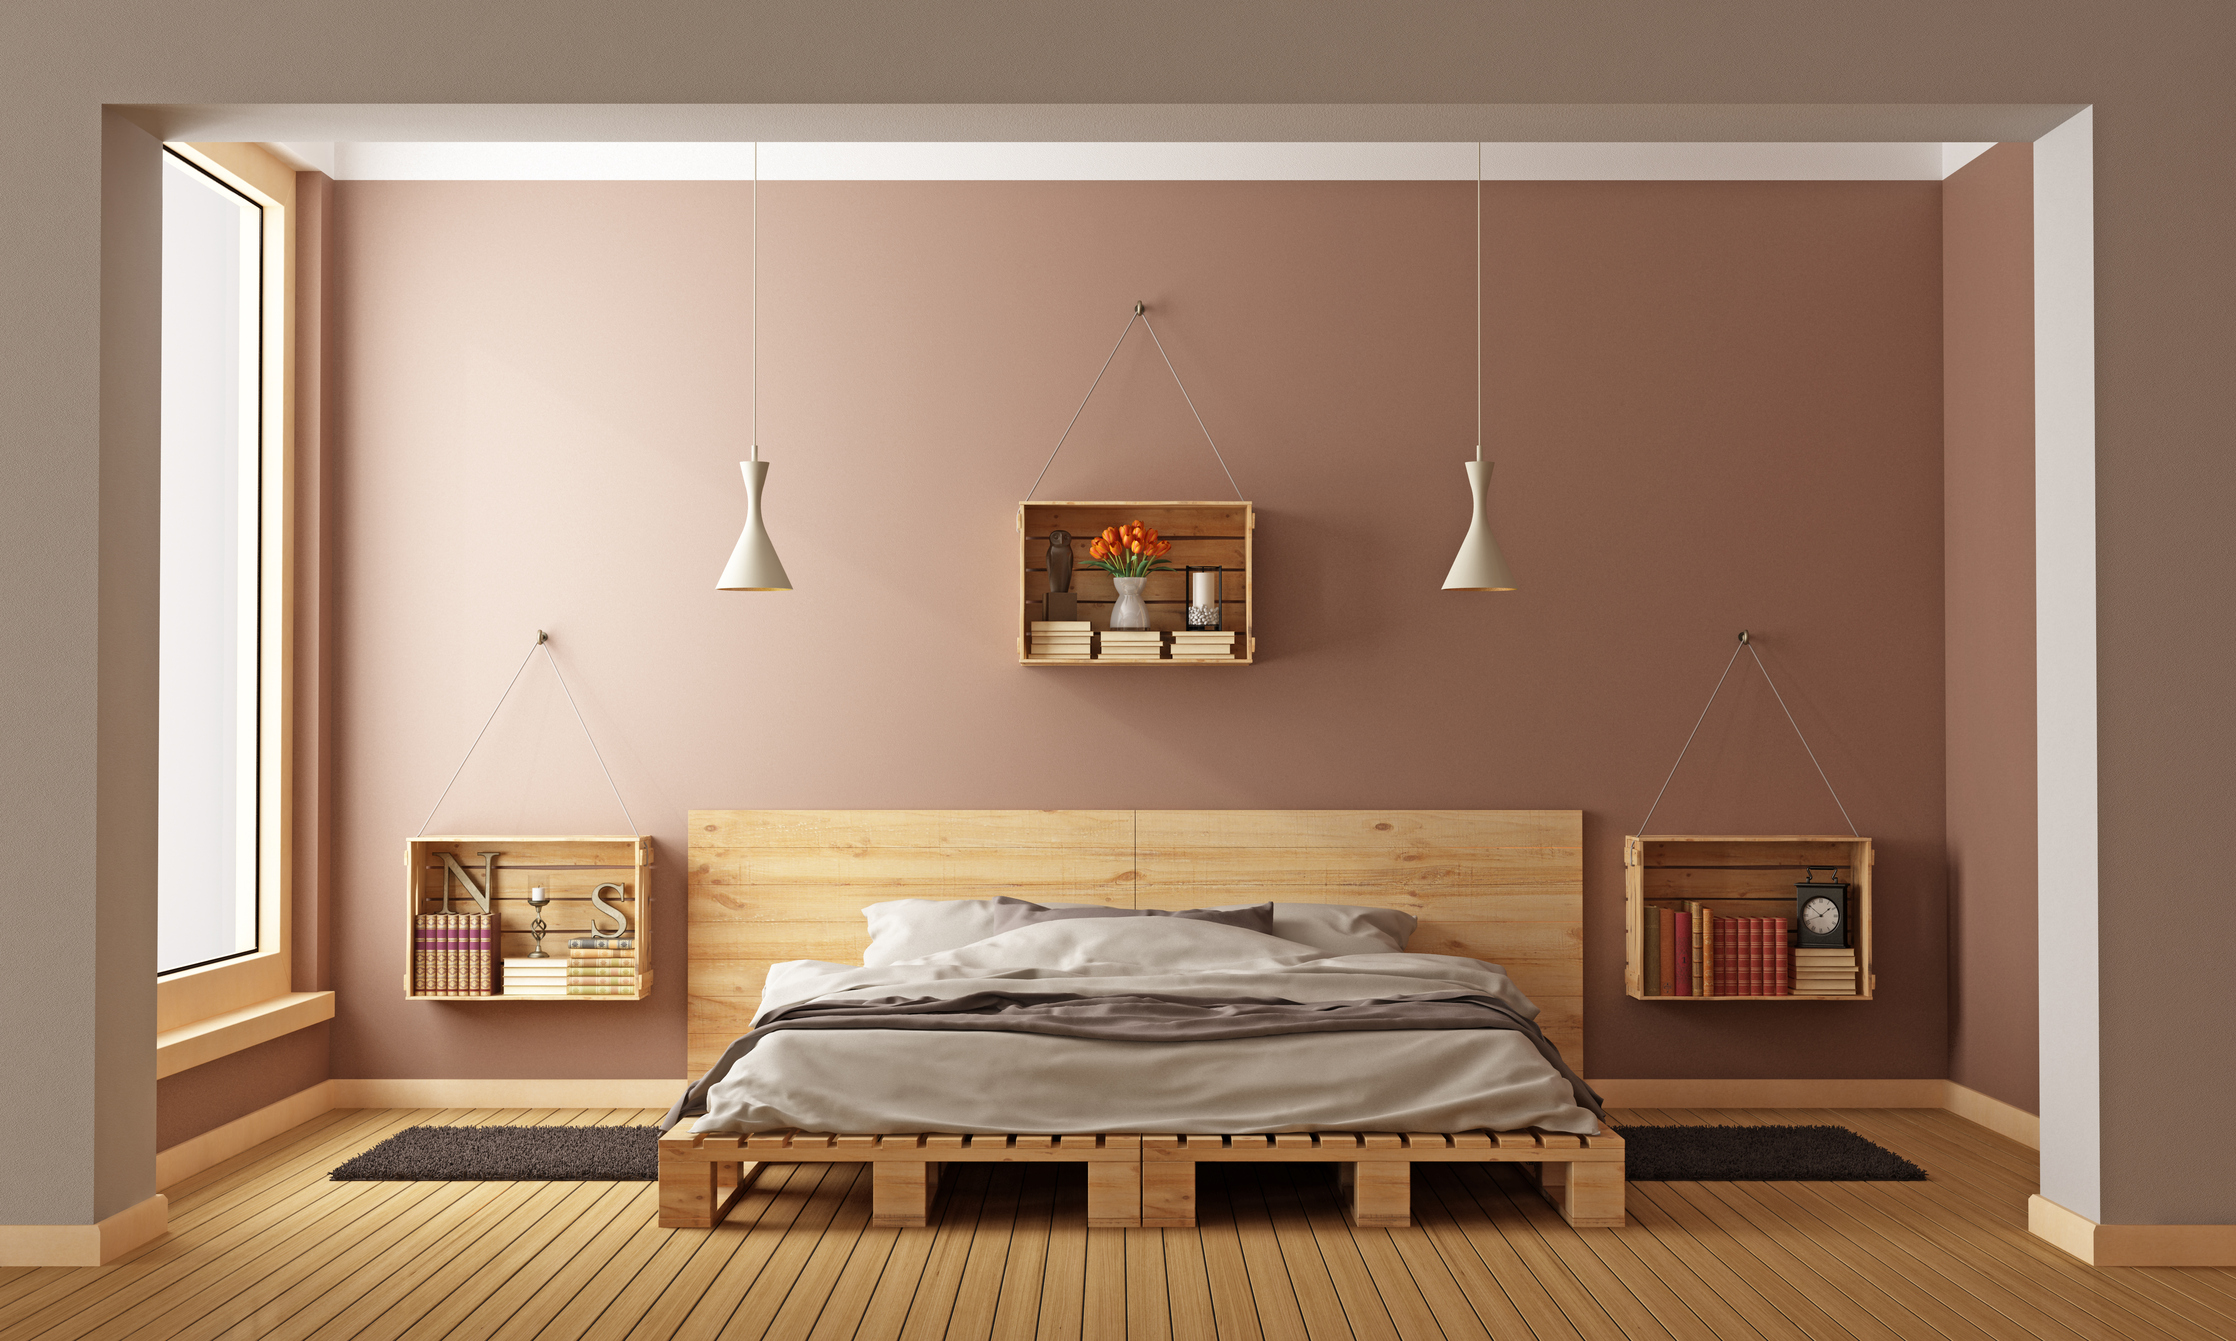 Bedroom with pallet bed and wooden crates